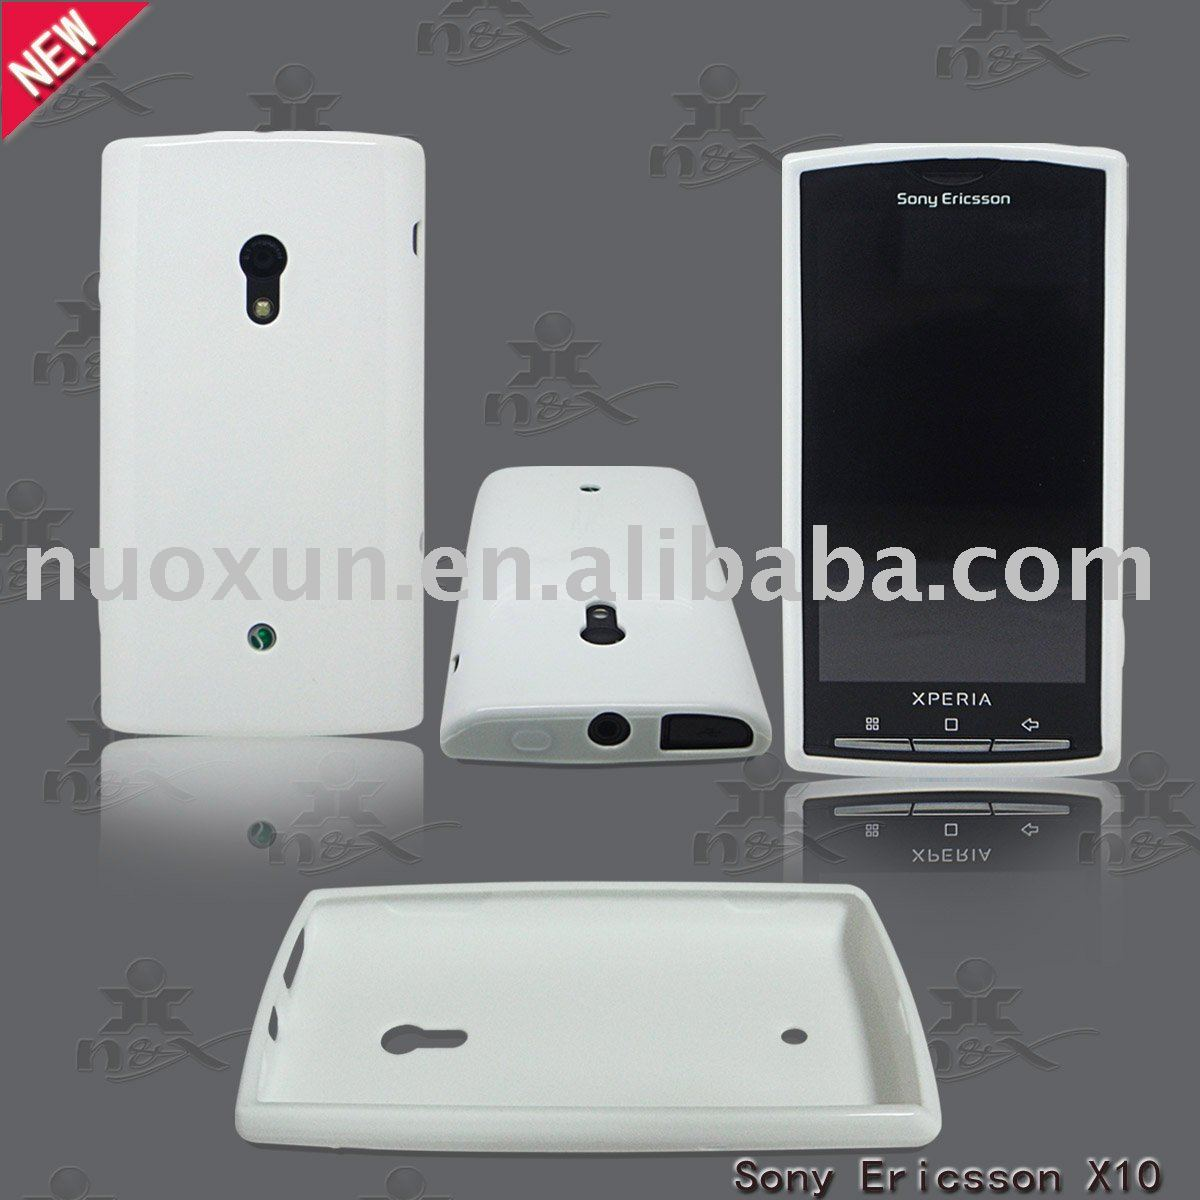 TPU soft skin case for Sony Ericsson X10